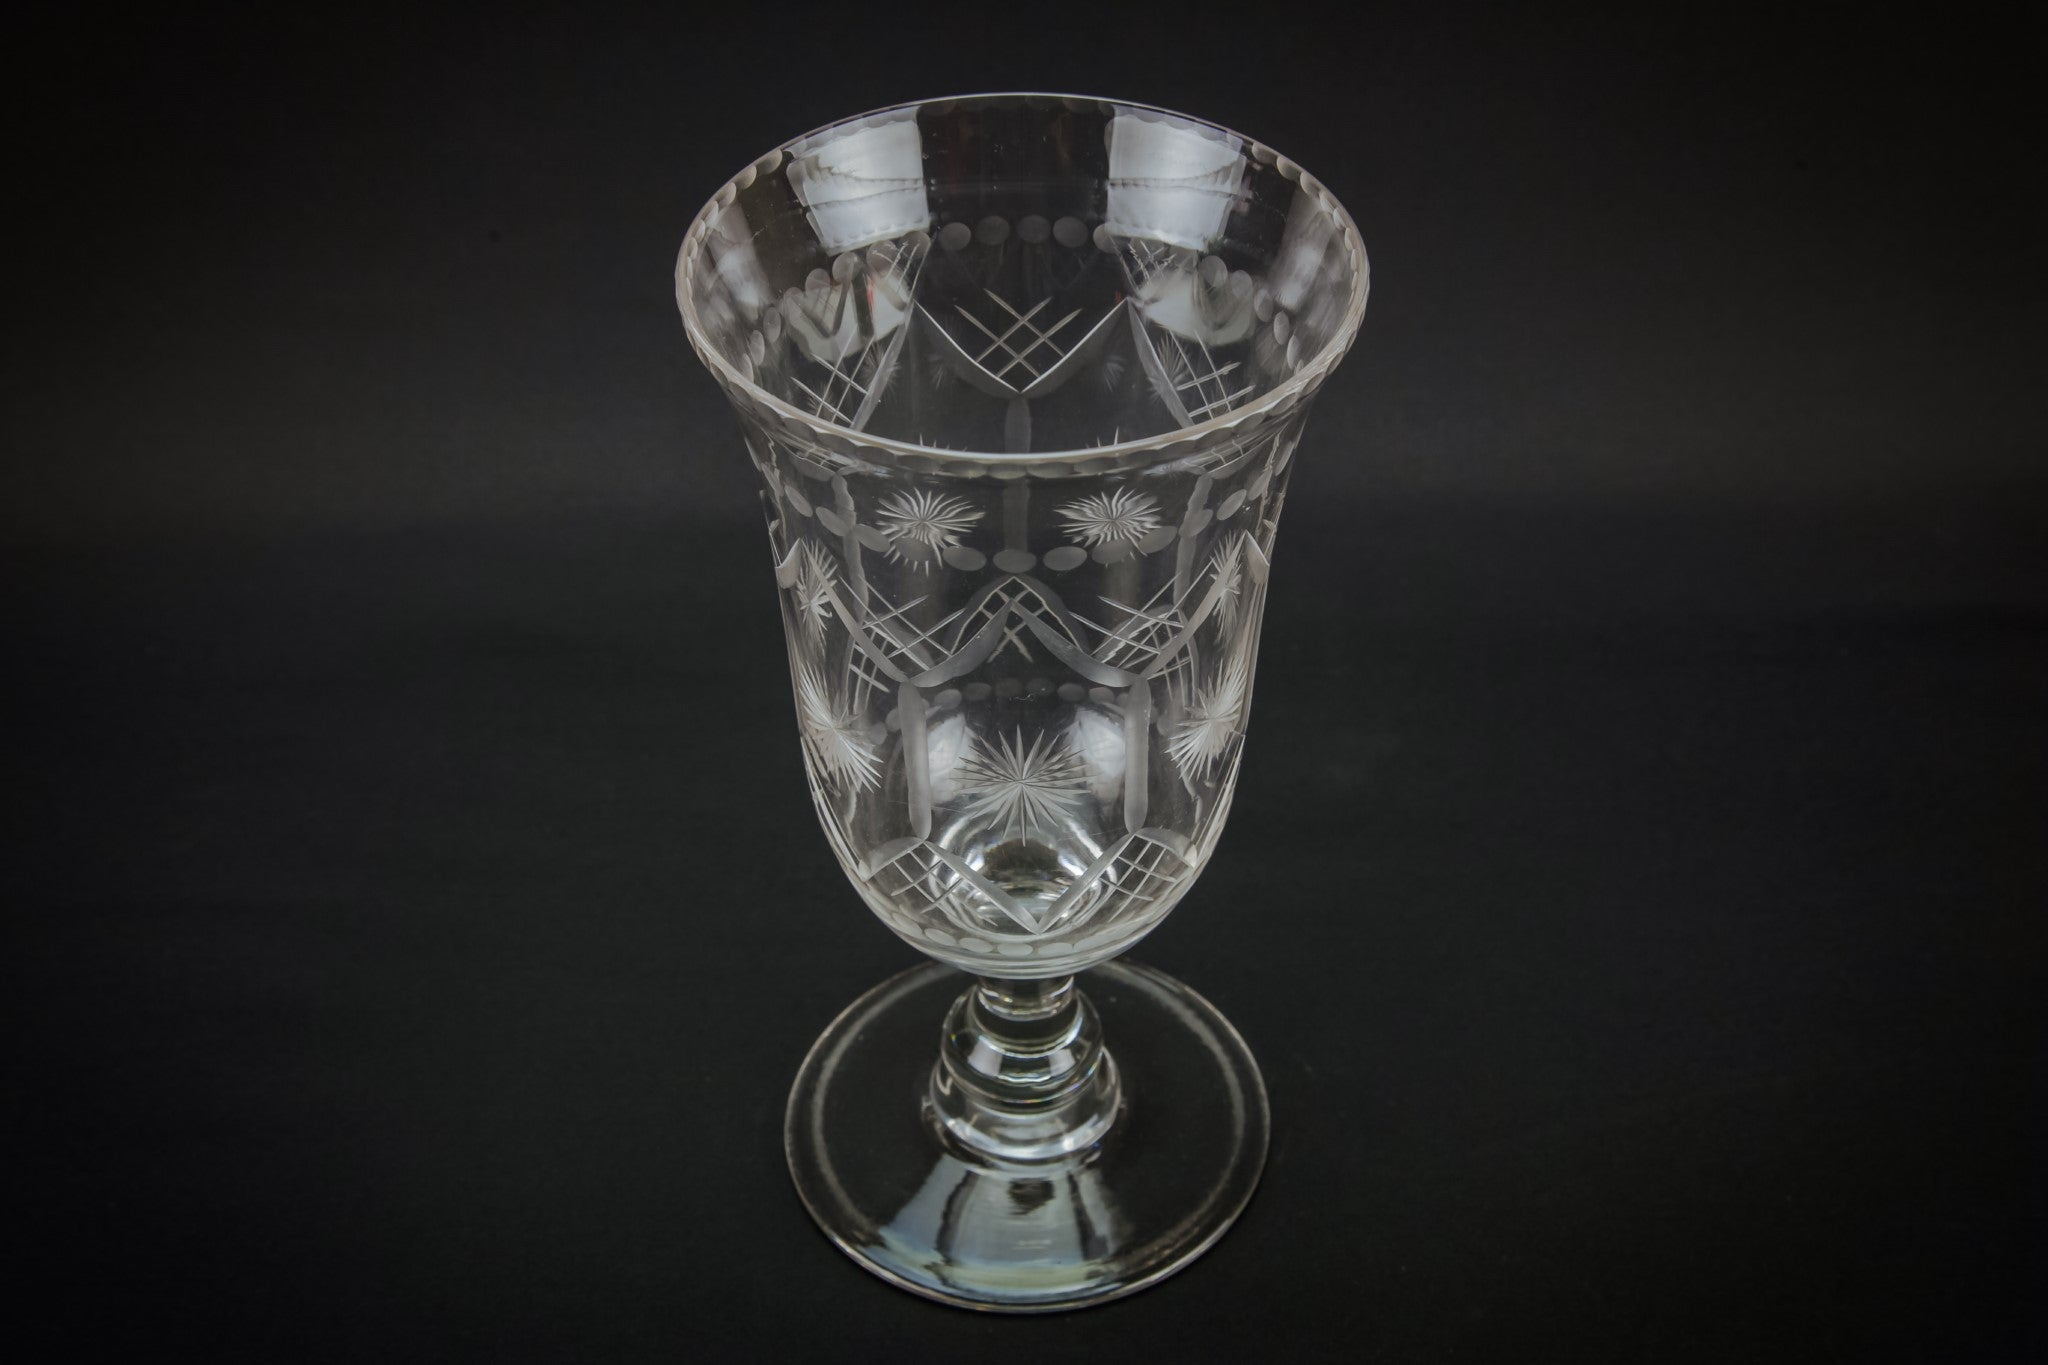 Glass Neo-Classical vase